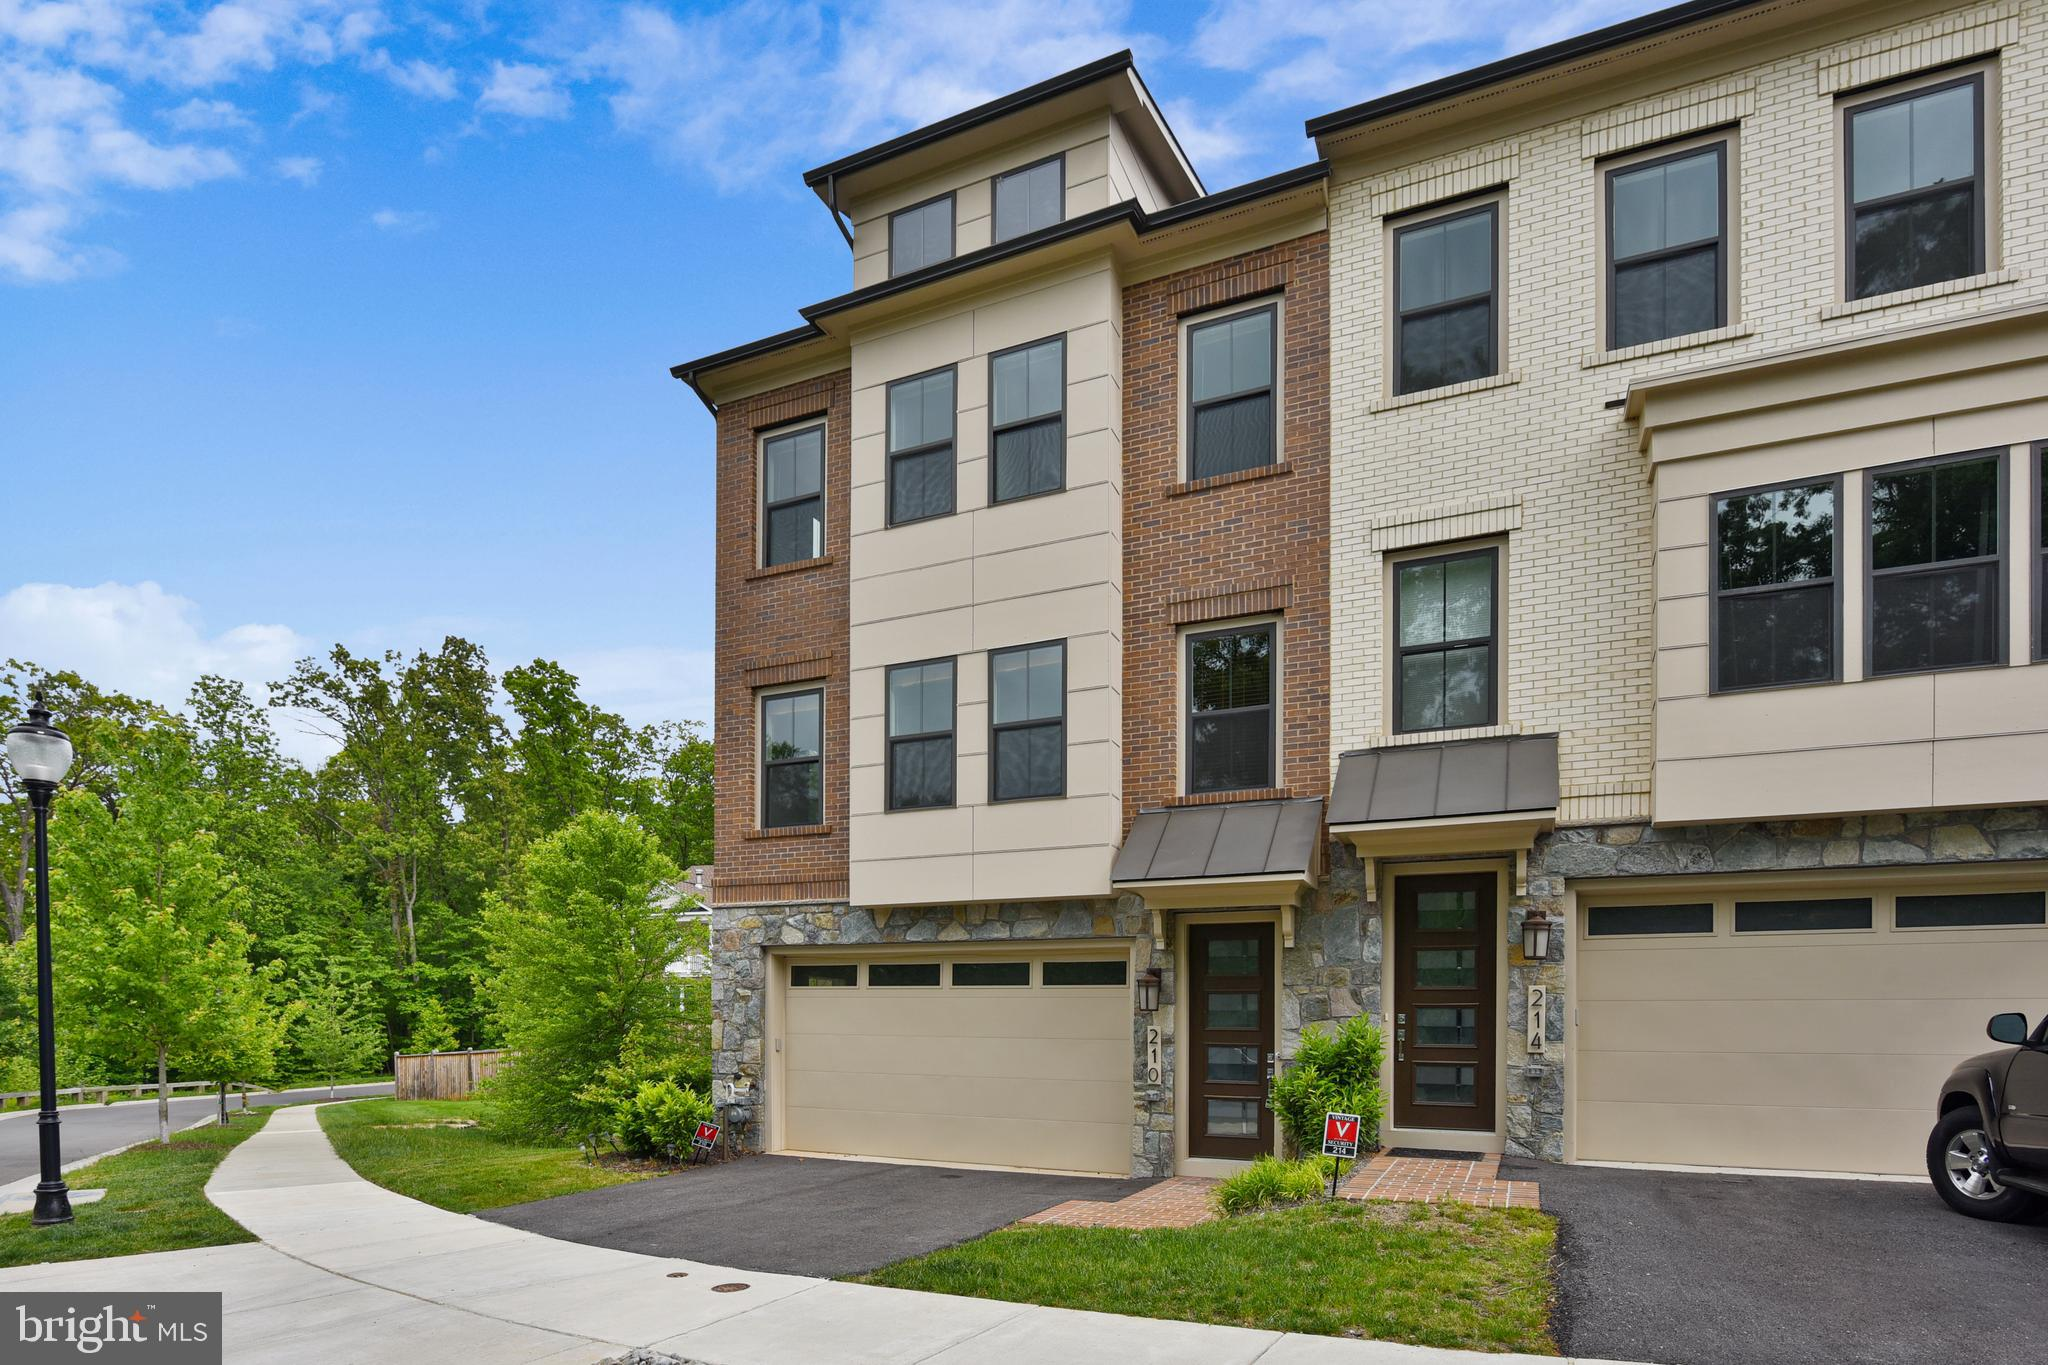 GREAT LOCATION, GREAT NEIGHBORHOOD - Stunning Large, End-Unit,  CRAFTMARK Townhome in the Parklands